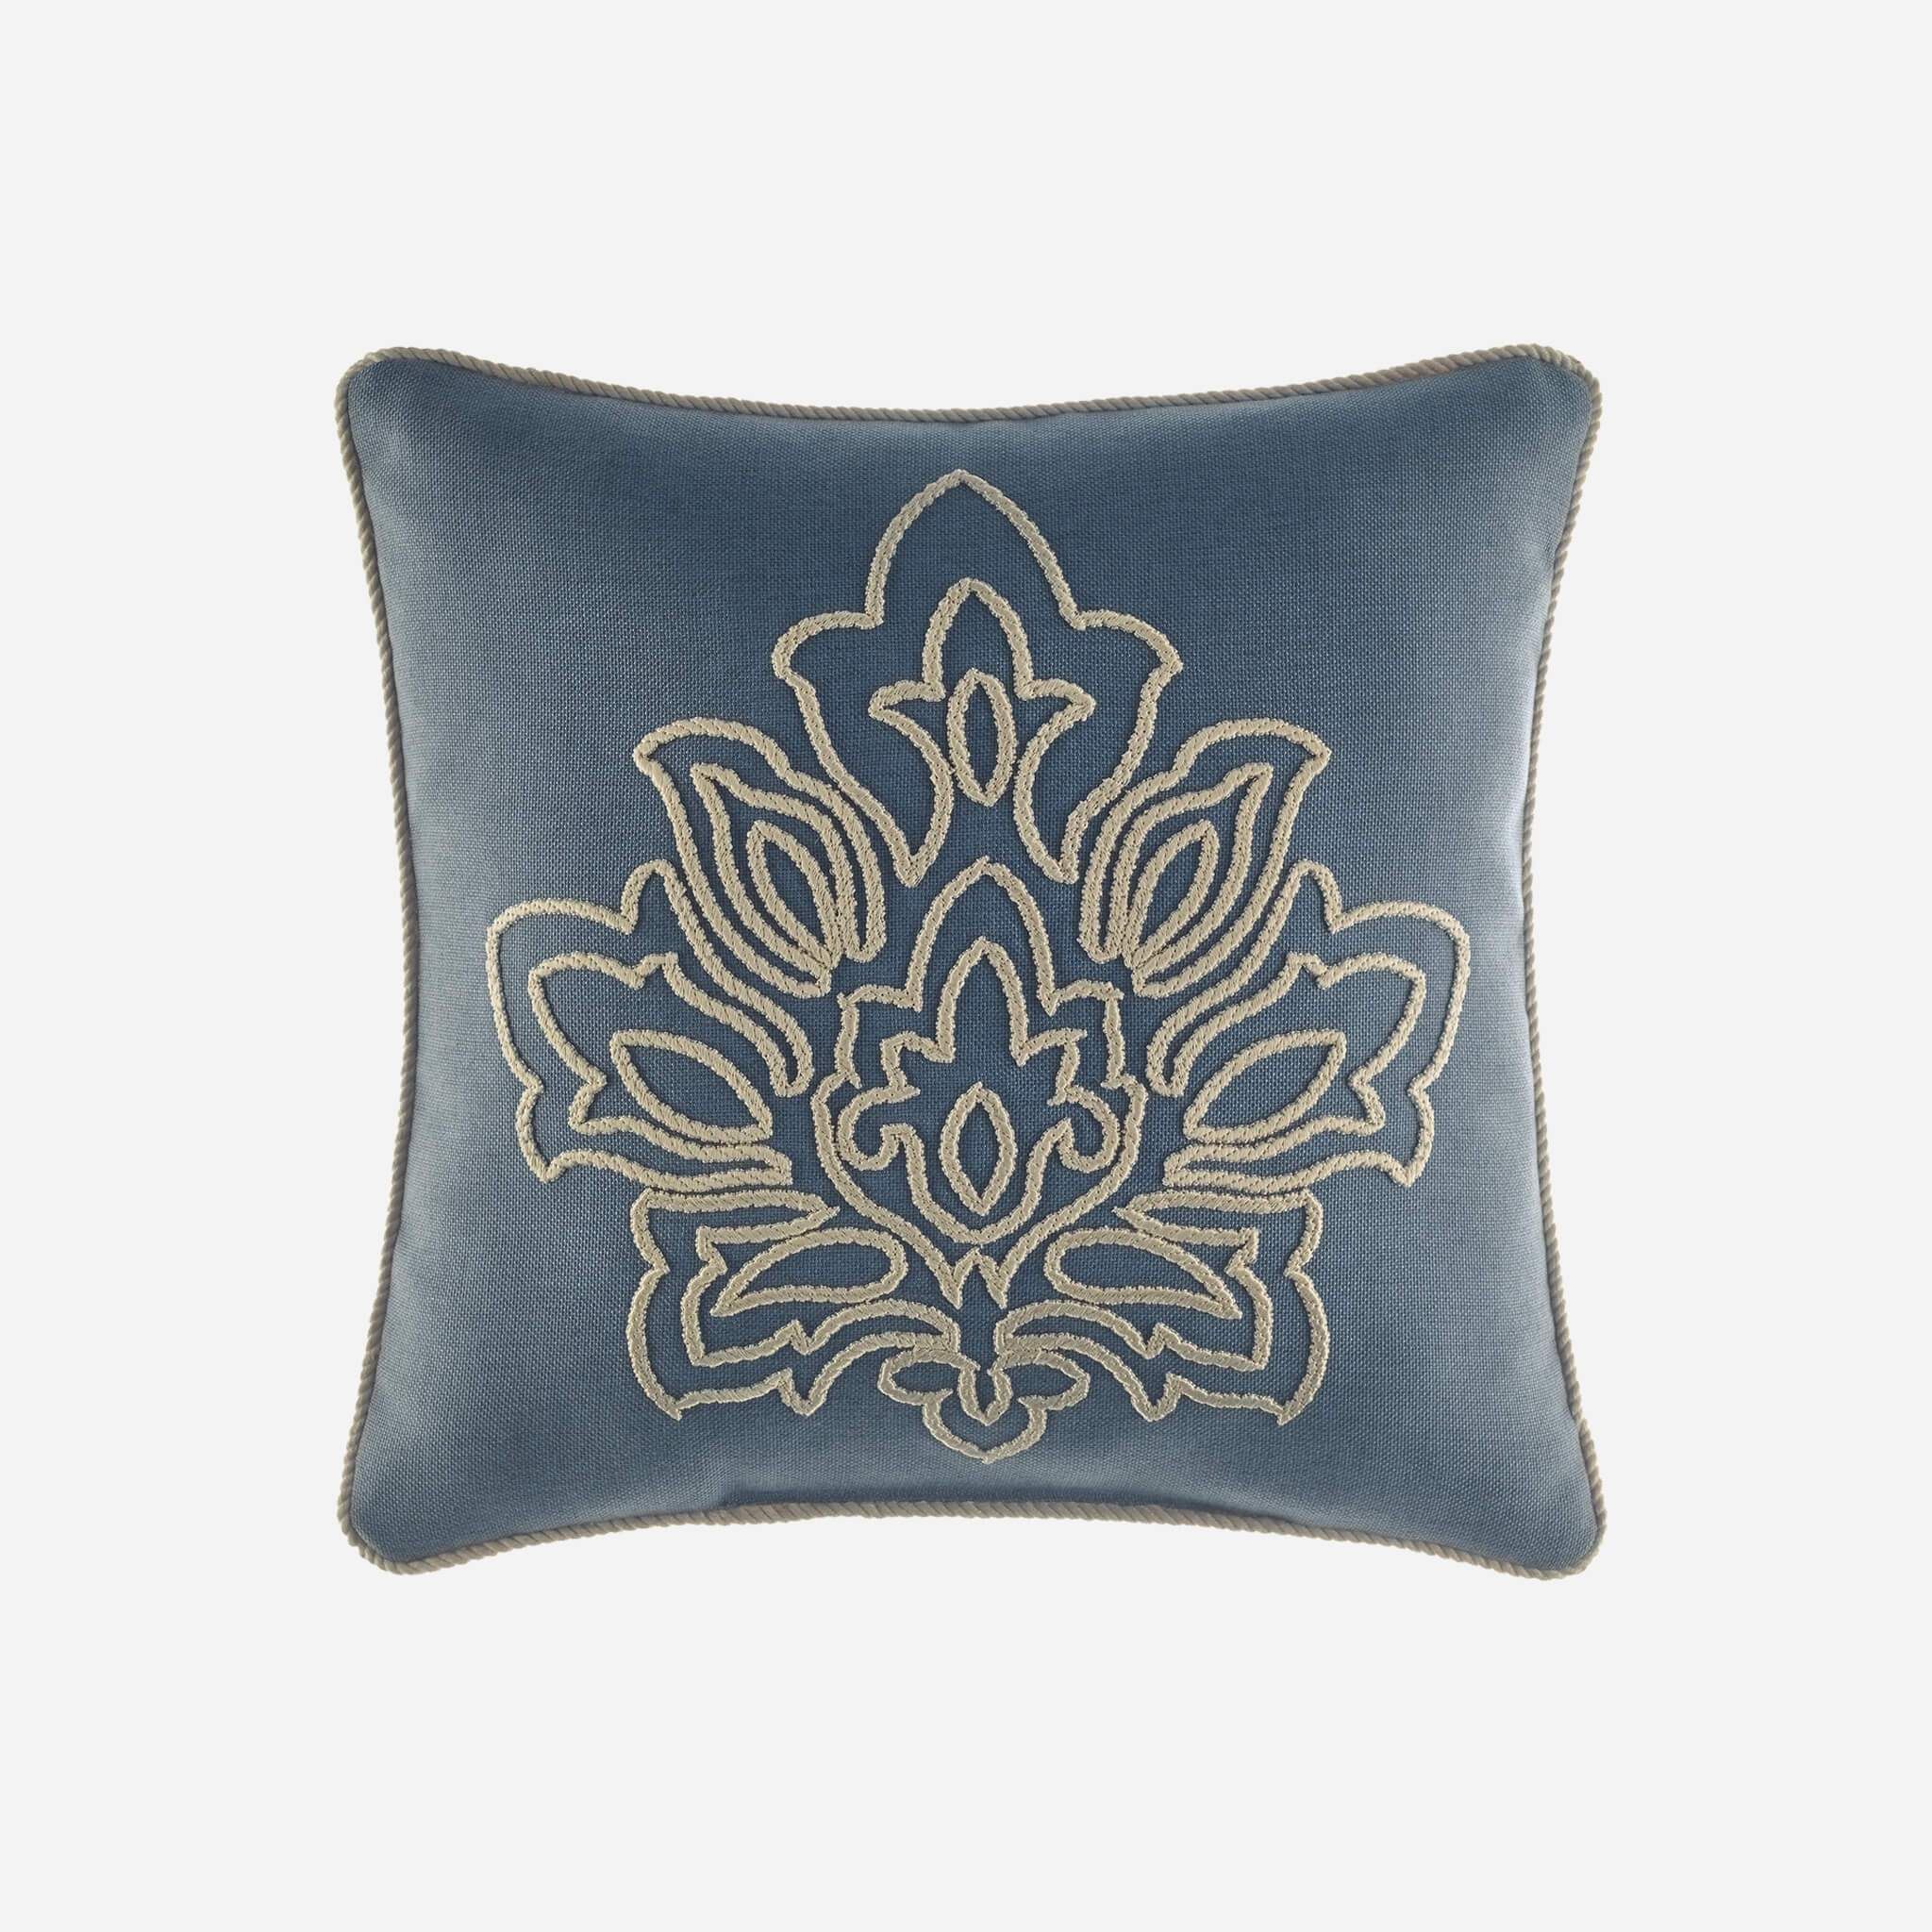 Captains Quarters Fashion Pillow